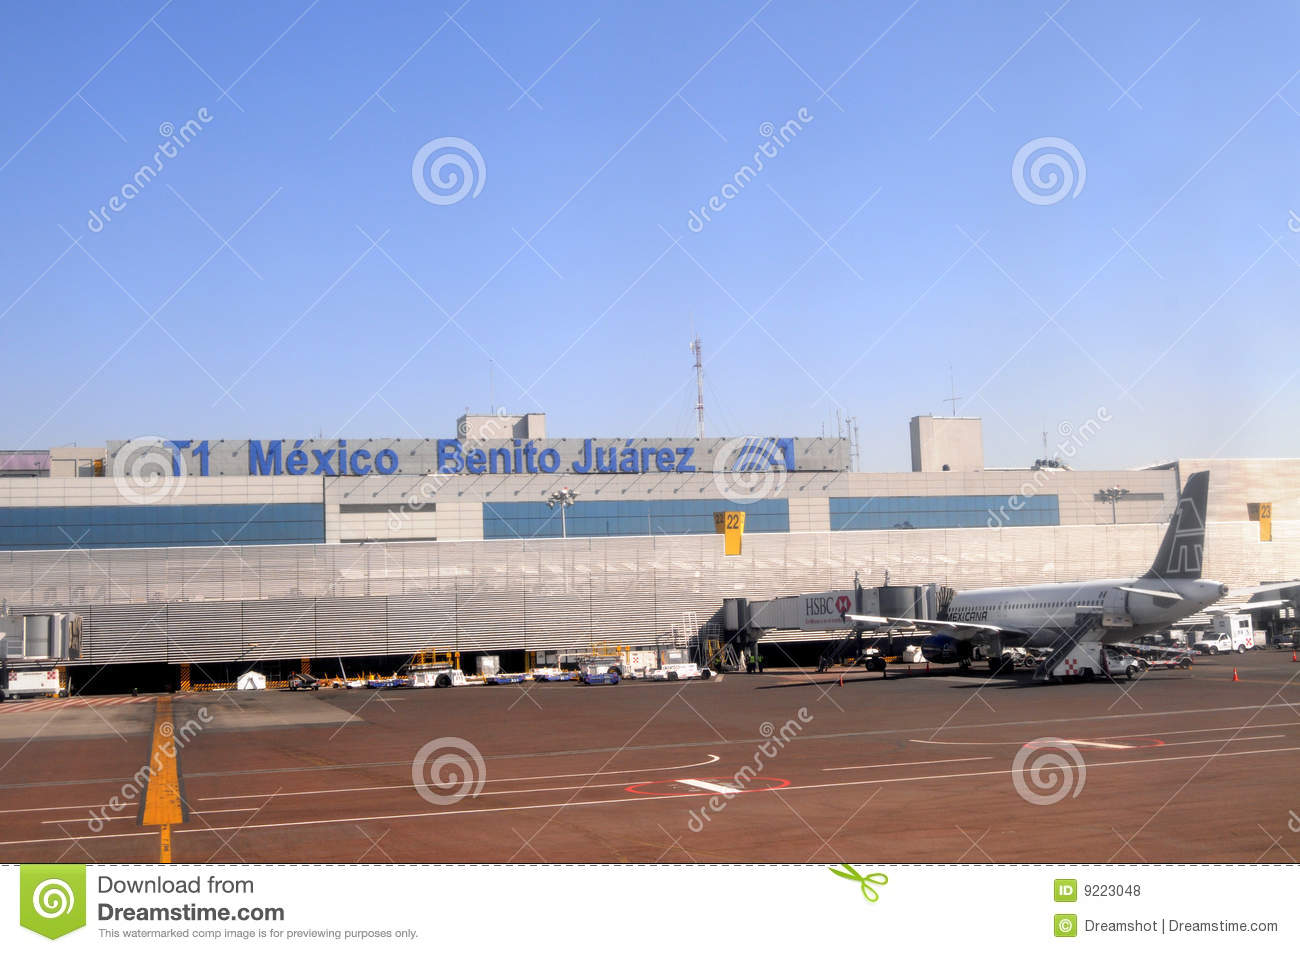 Aéroport de Mexico